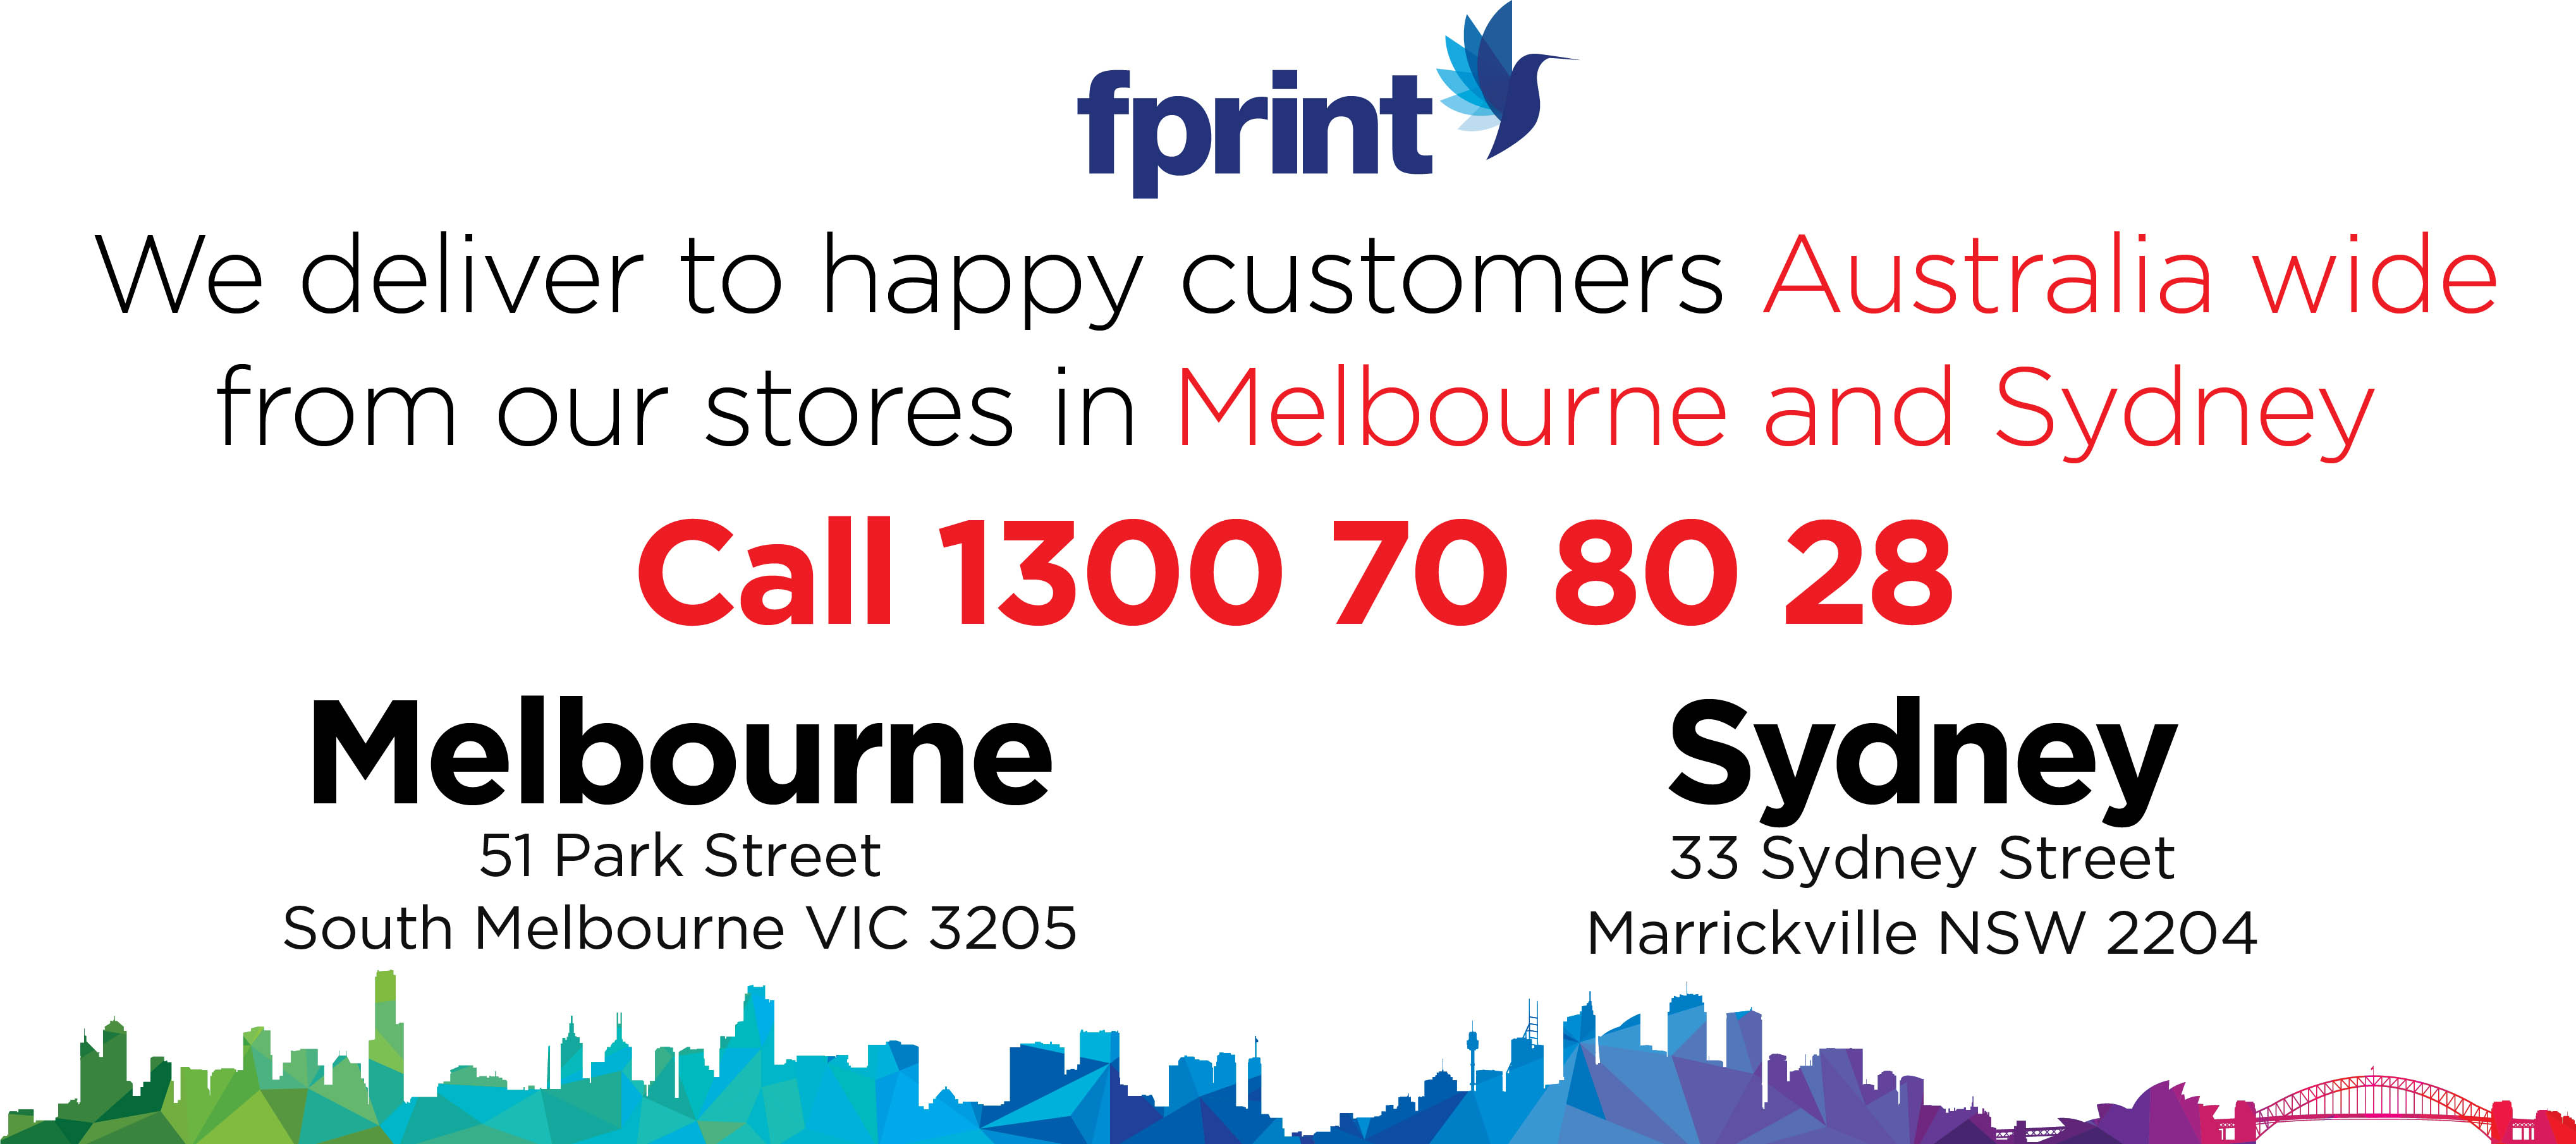 contact-page-printing-melbourne-sydney18.jpg